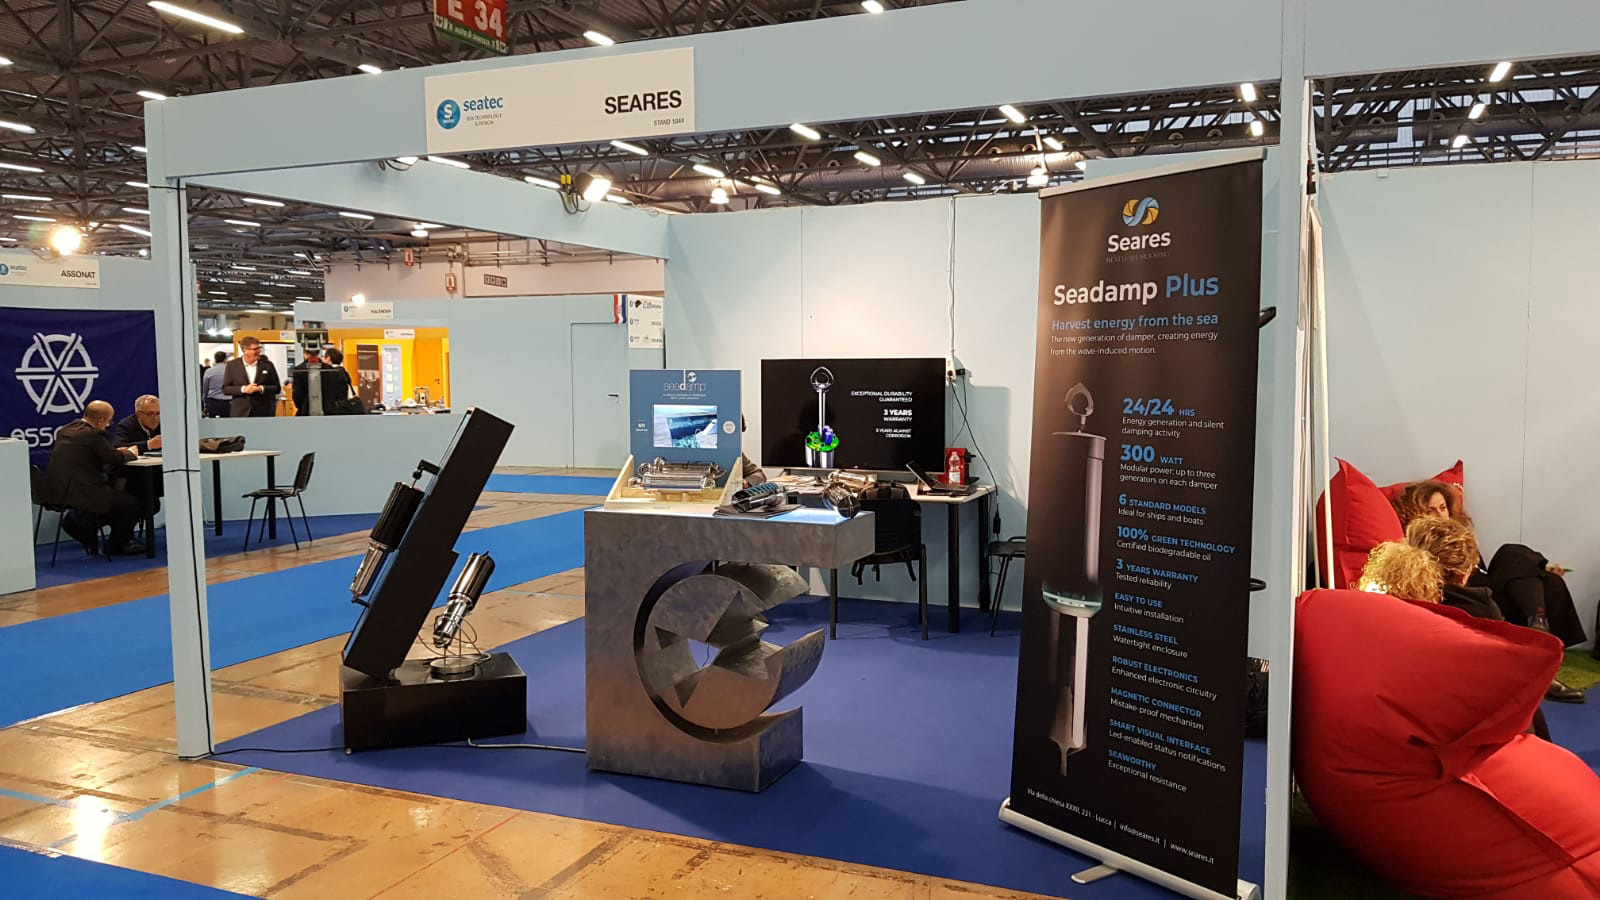 SeaTec2019 Seares Stand 004